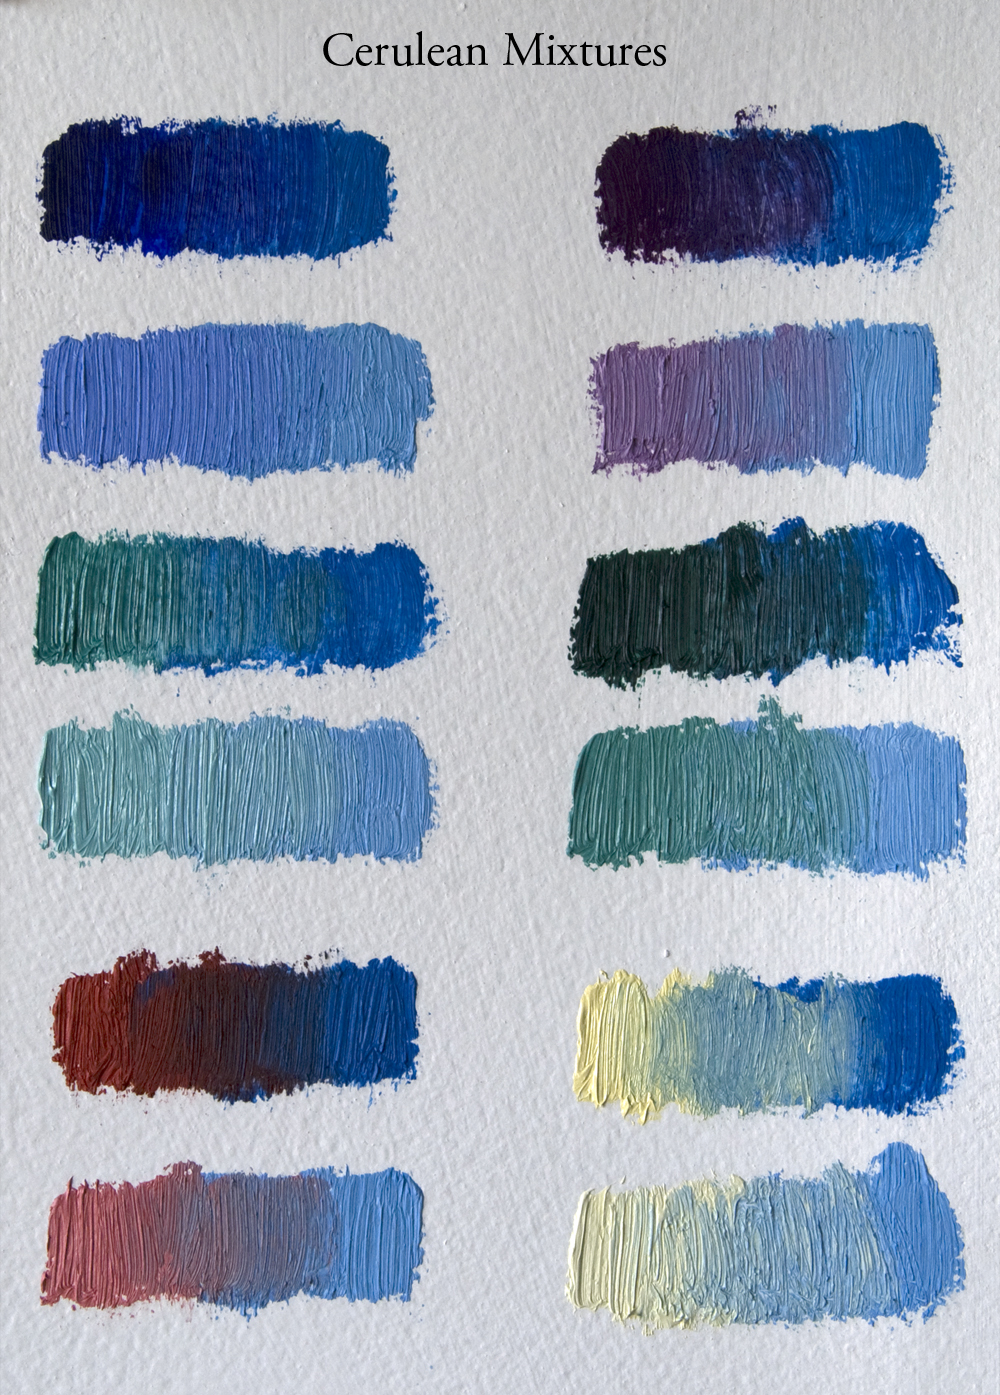 cerulean-with-swatches